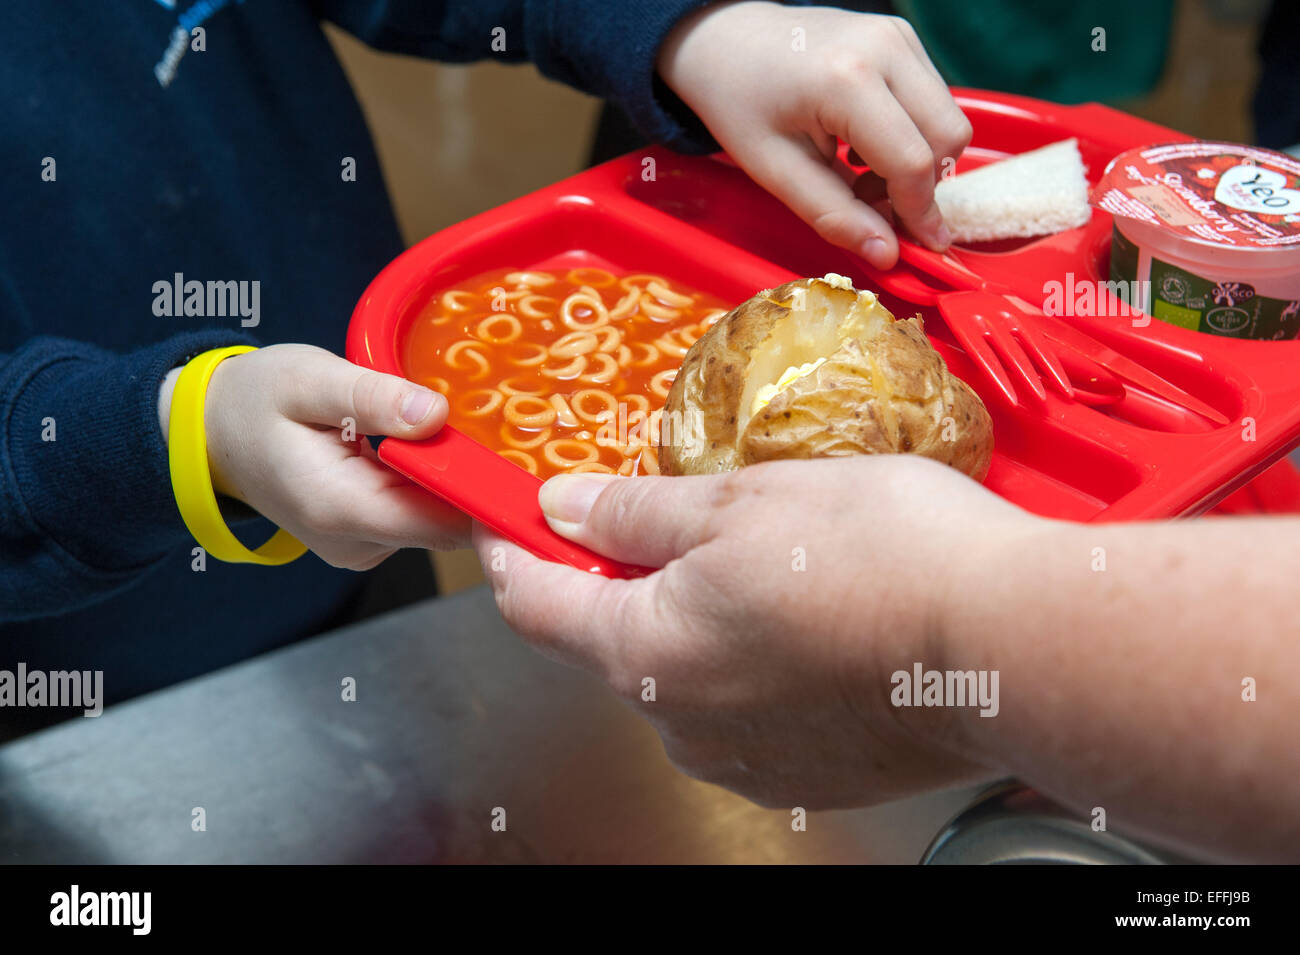 A young child at a UK primary school is handed a school dinner including a jacket potato and spaghetti hoops on Stock Photo